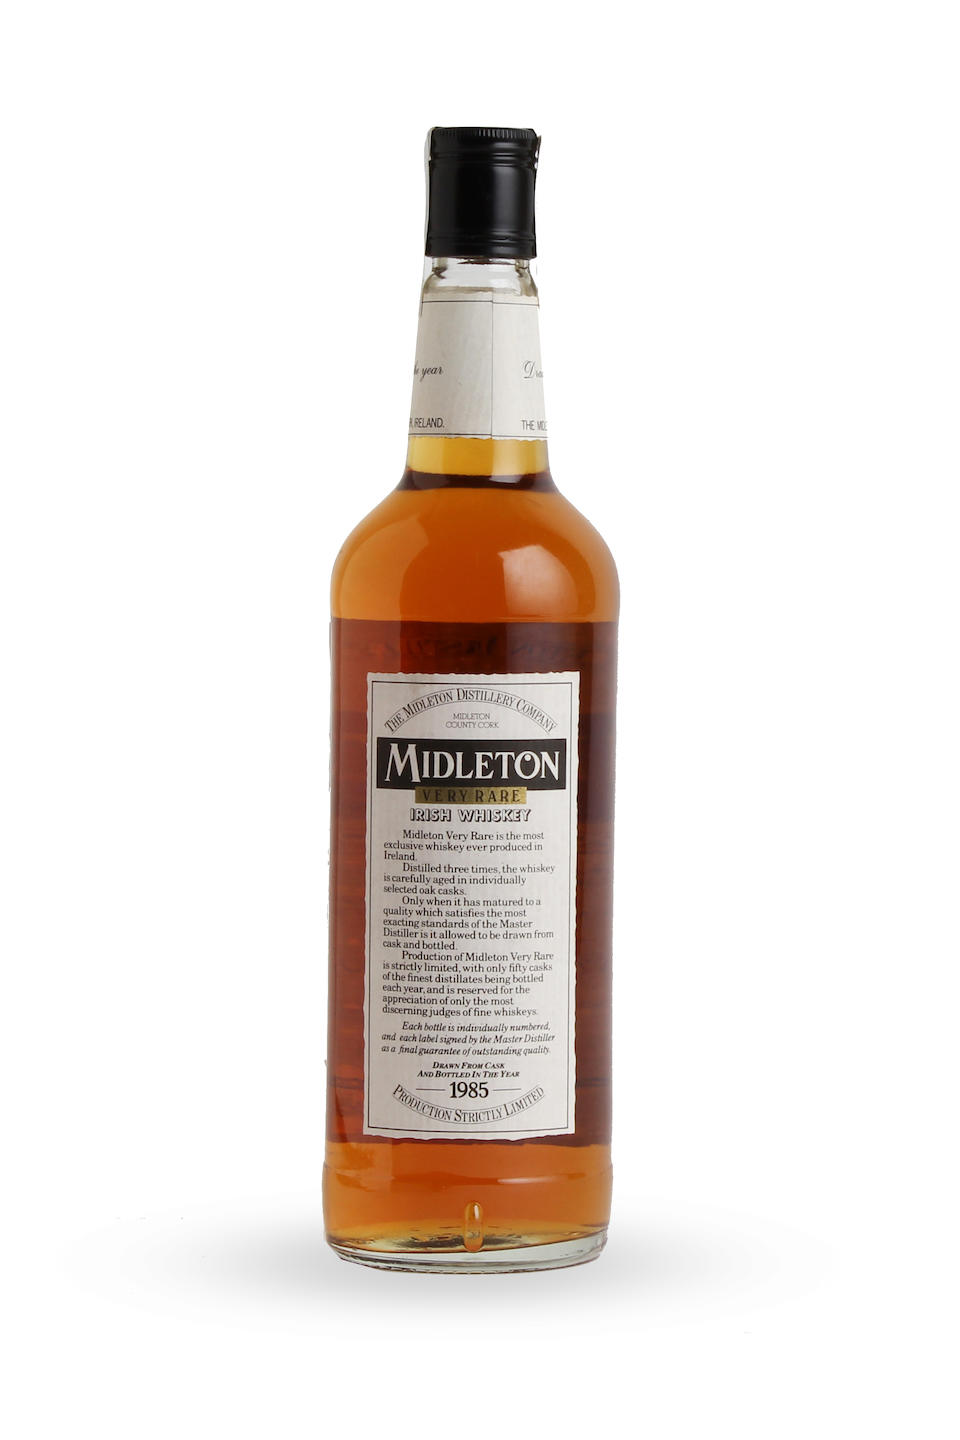 Midleton Very Rare-Bottled 1985